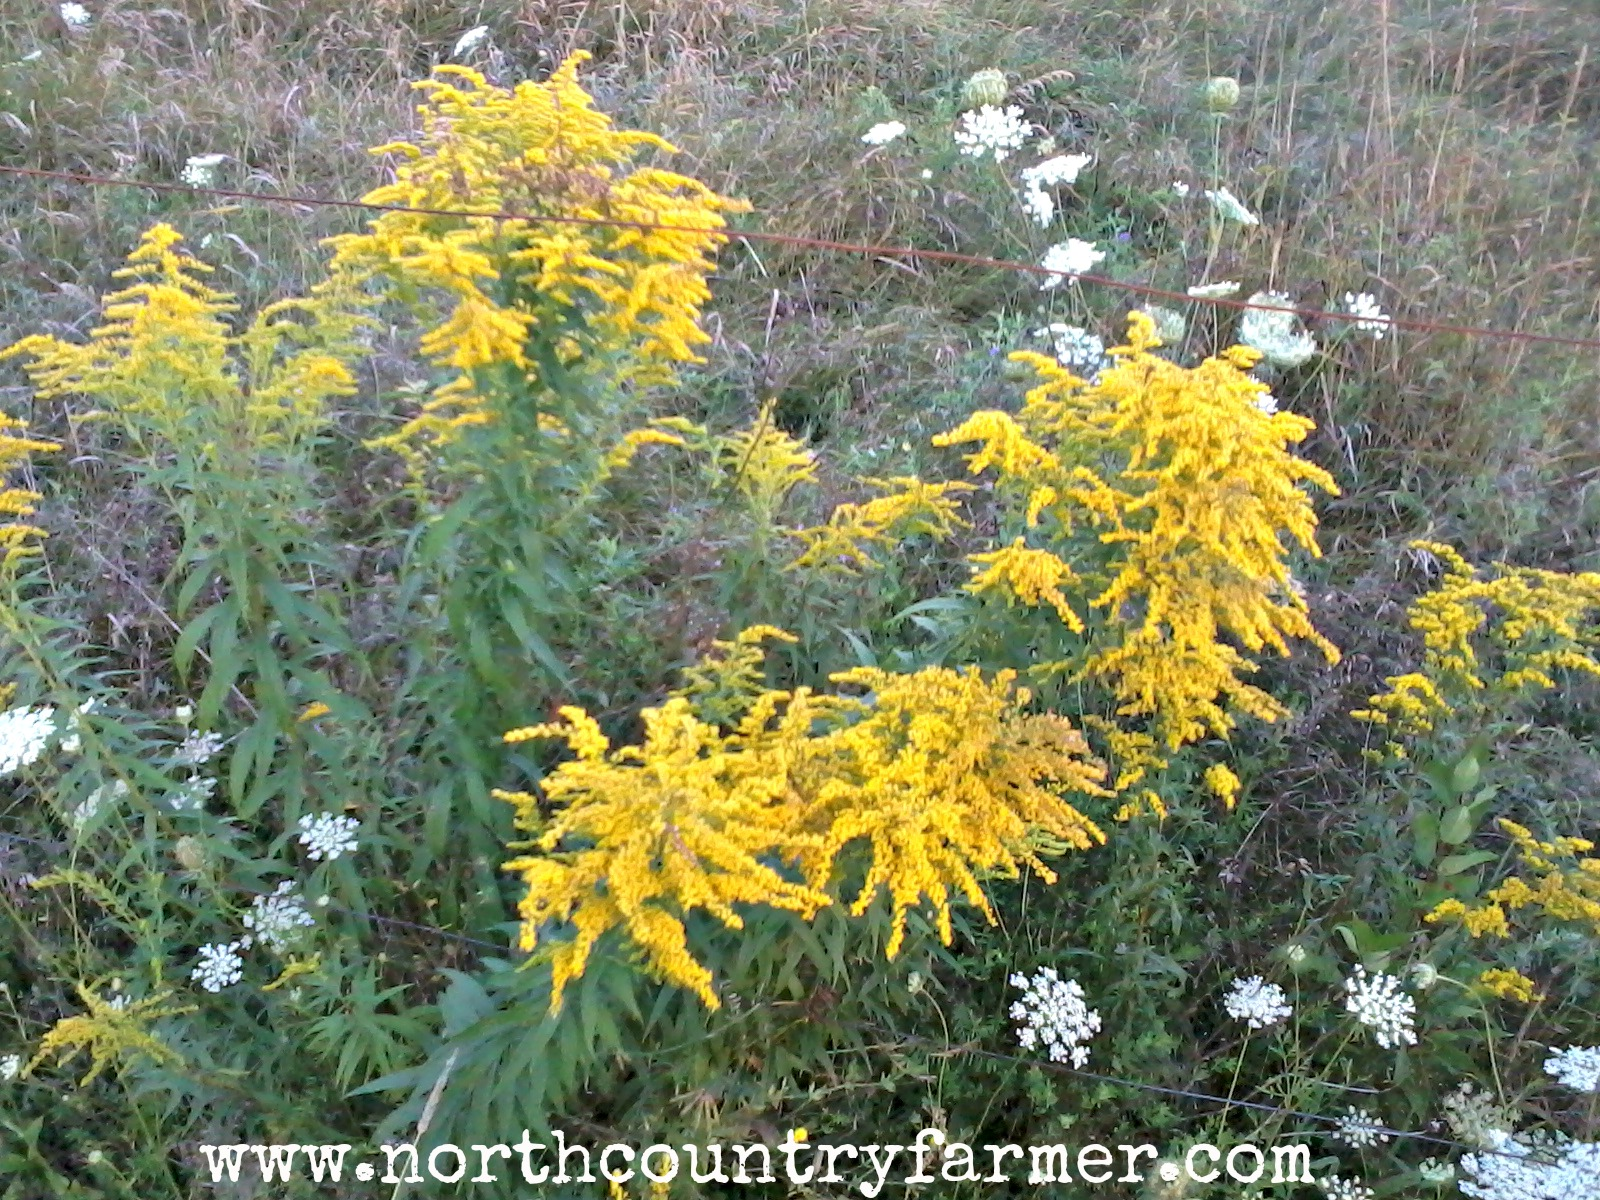 Golden rod: properties, use and contraindications 69